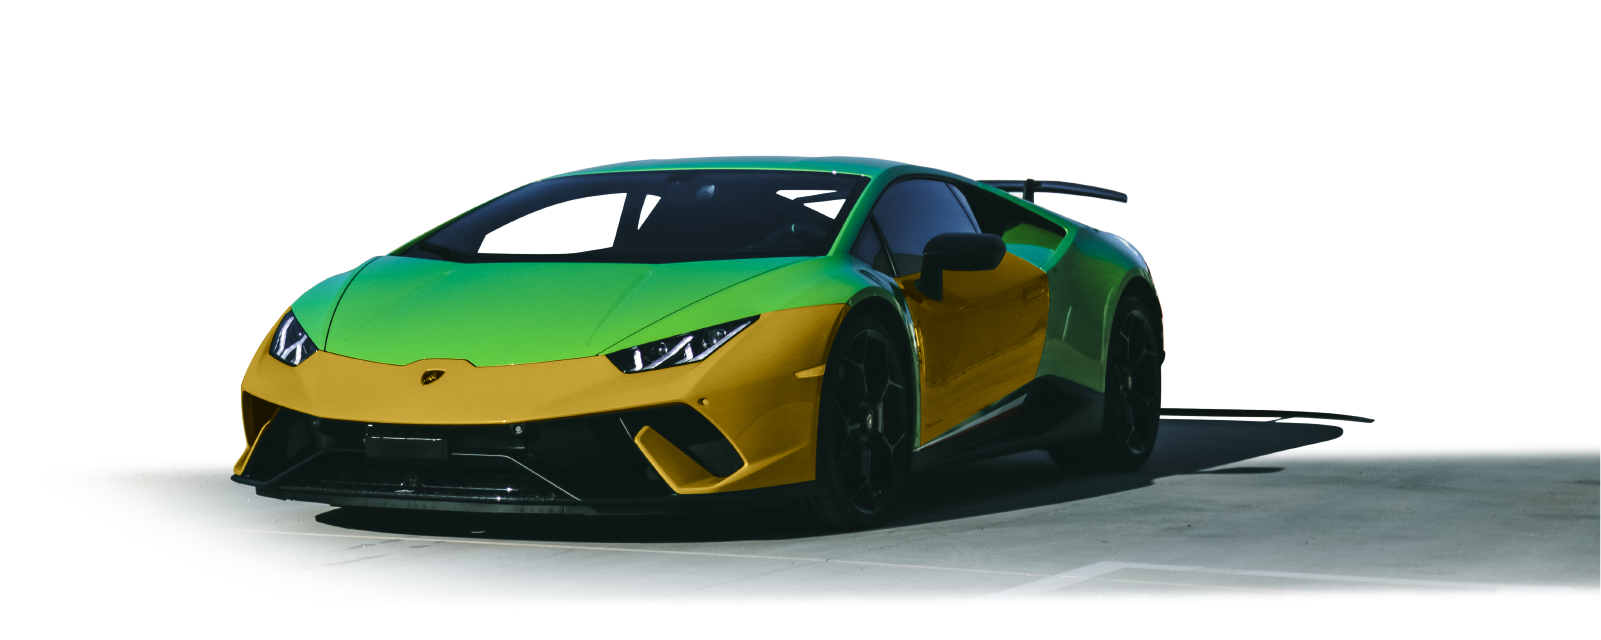 WAX-IT Detailing PPF Detail Paint Protection Film Custom Lamborghini